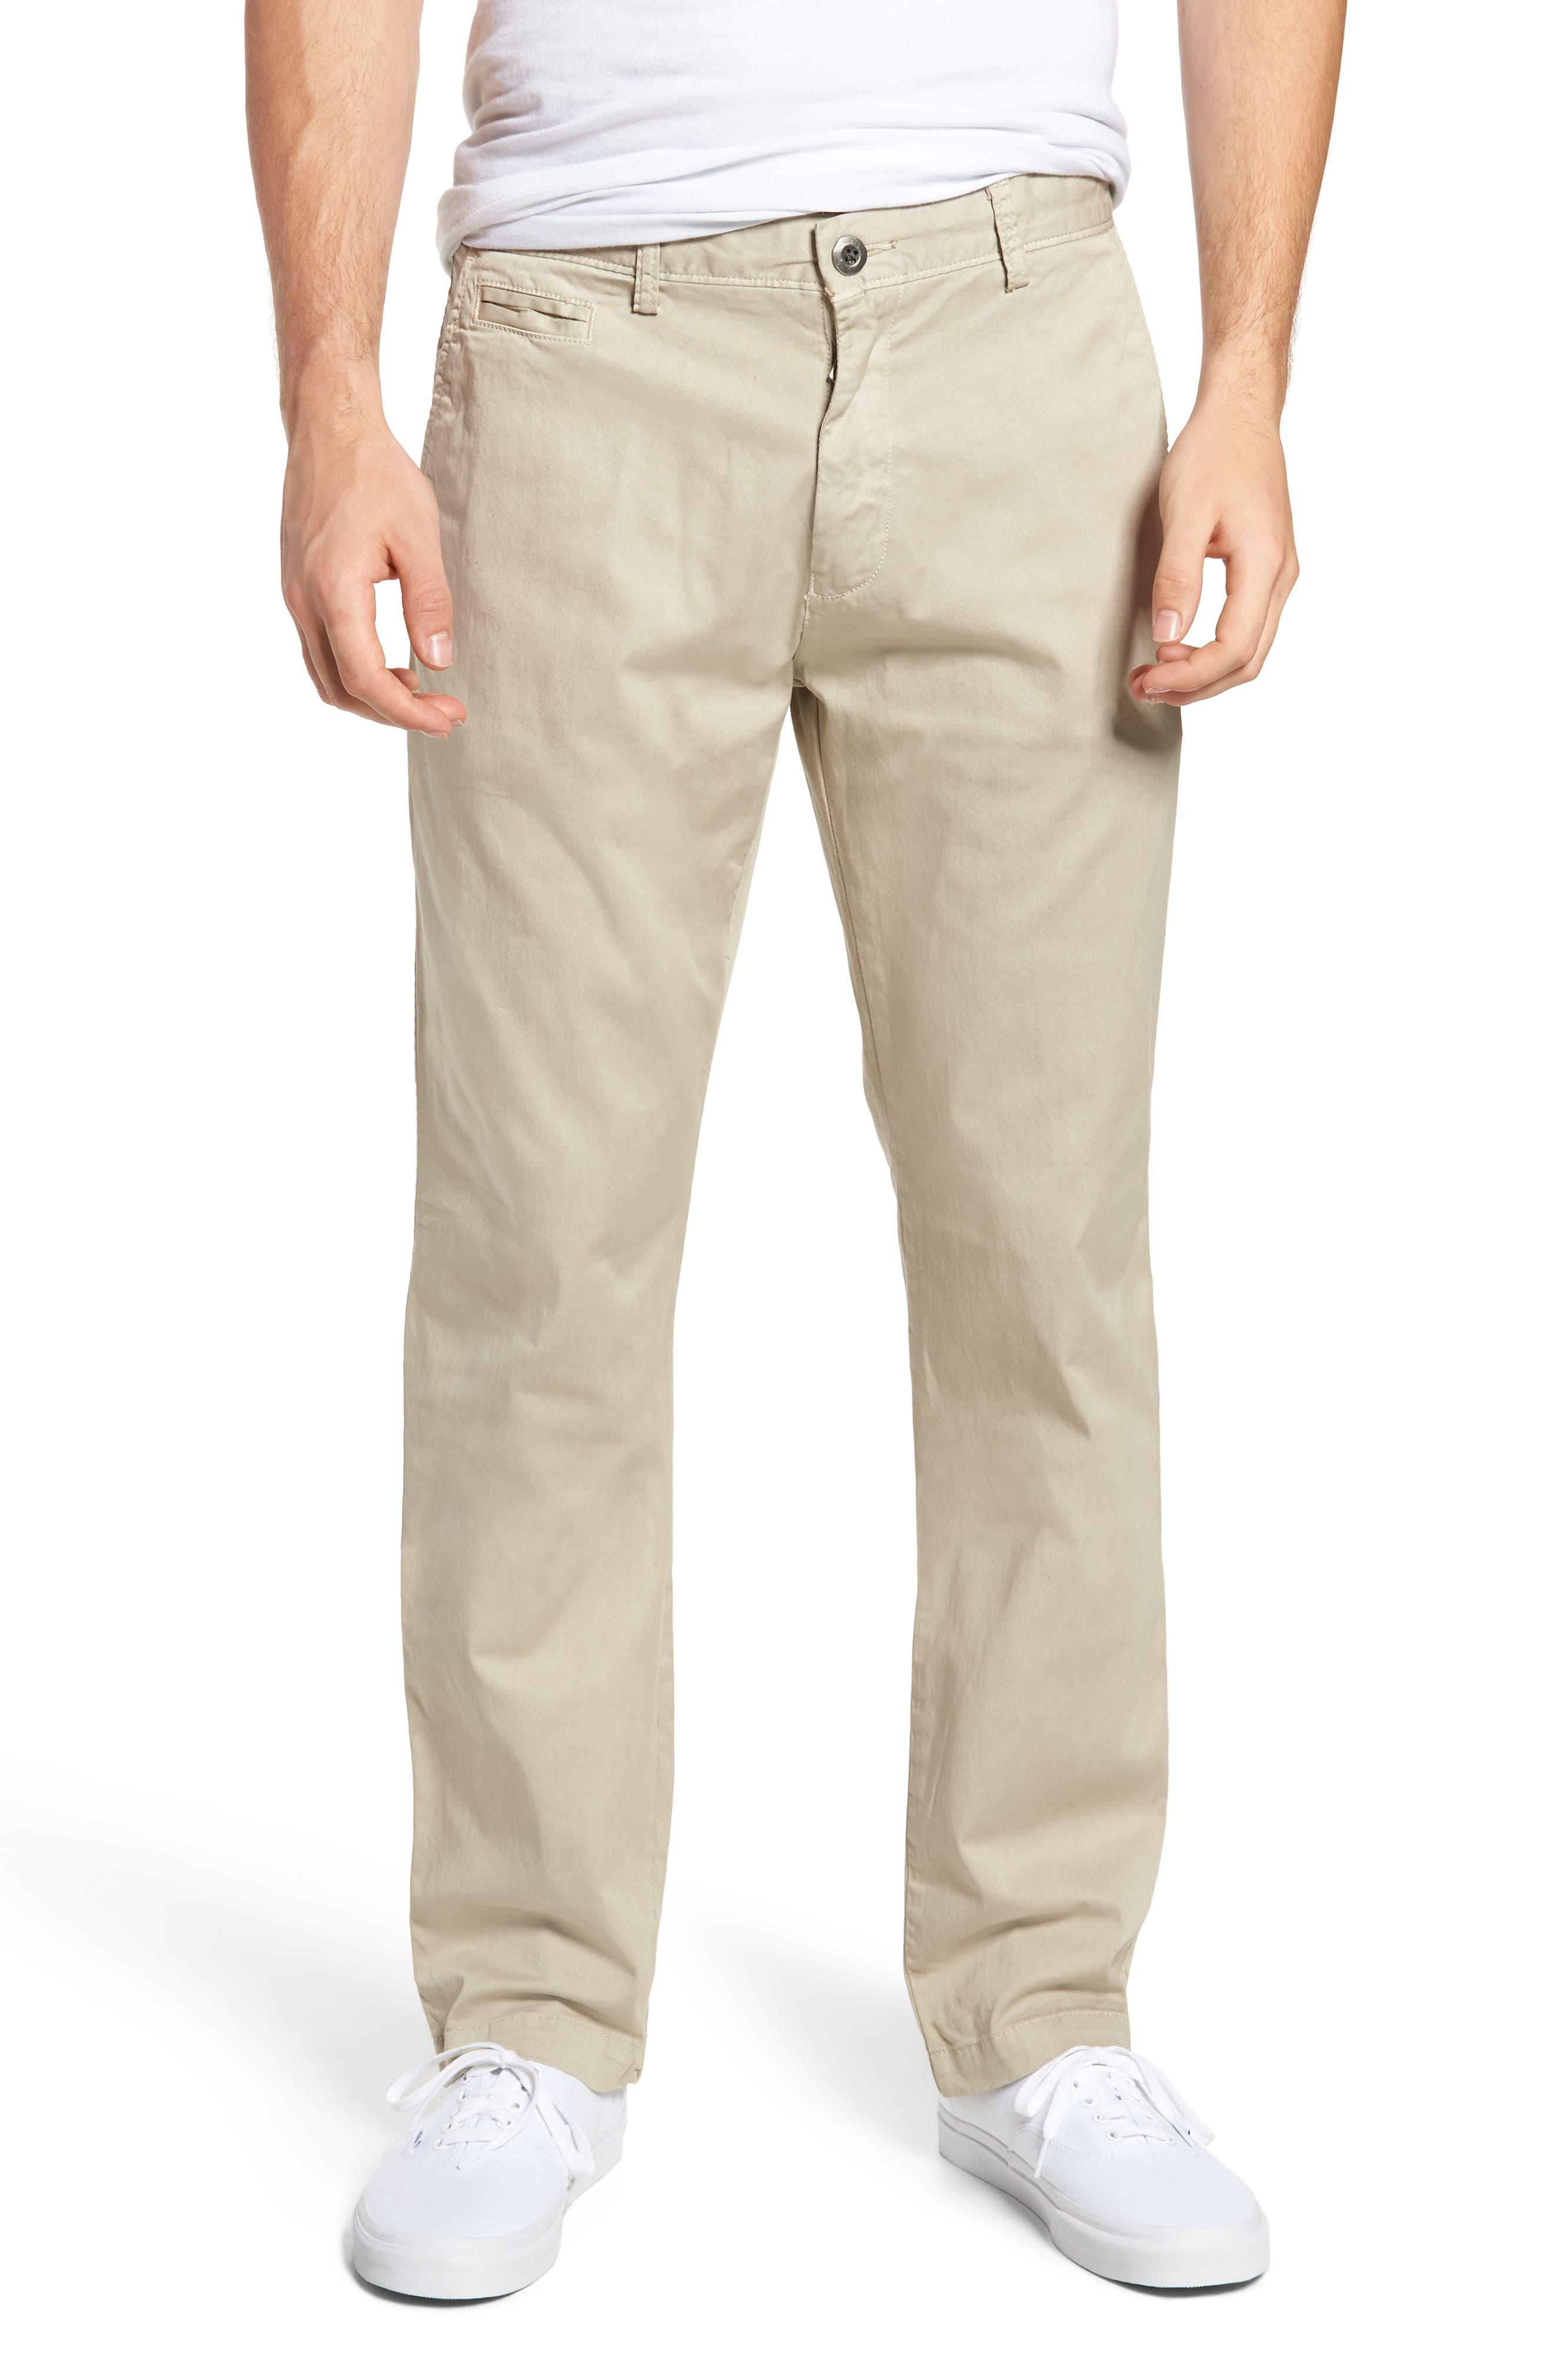 Alternate Image 1 Selected - Original Paperbacks Belmont Stretch Chino Pants